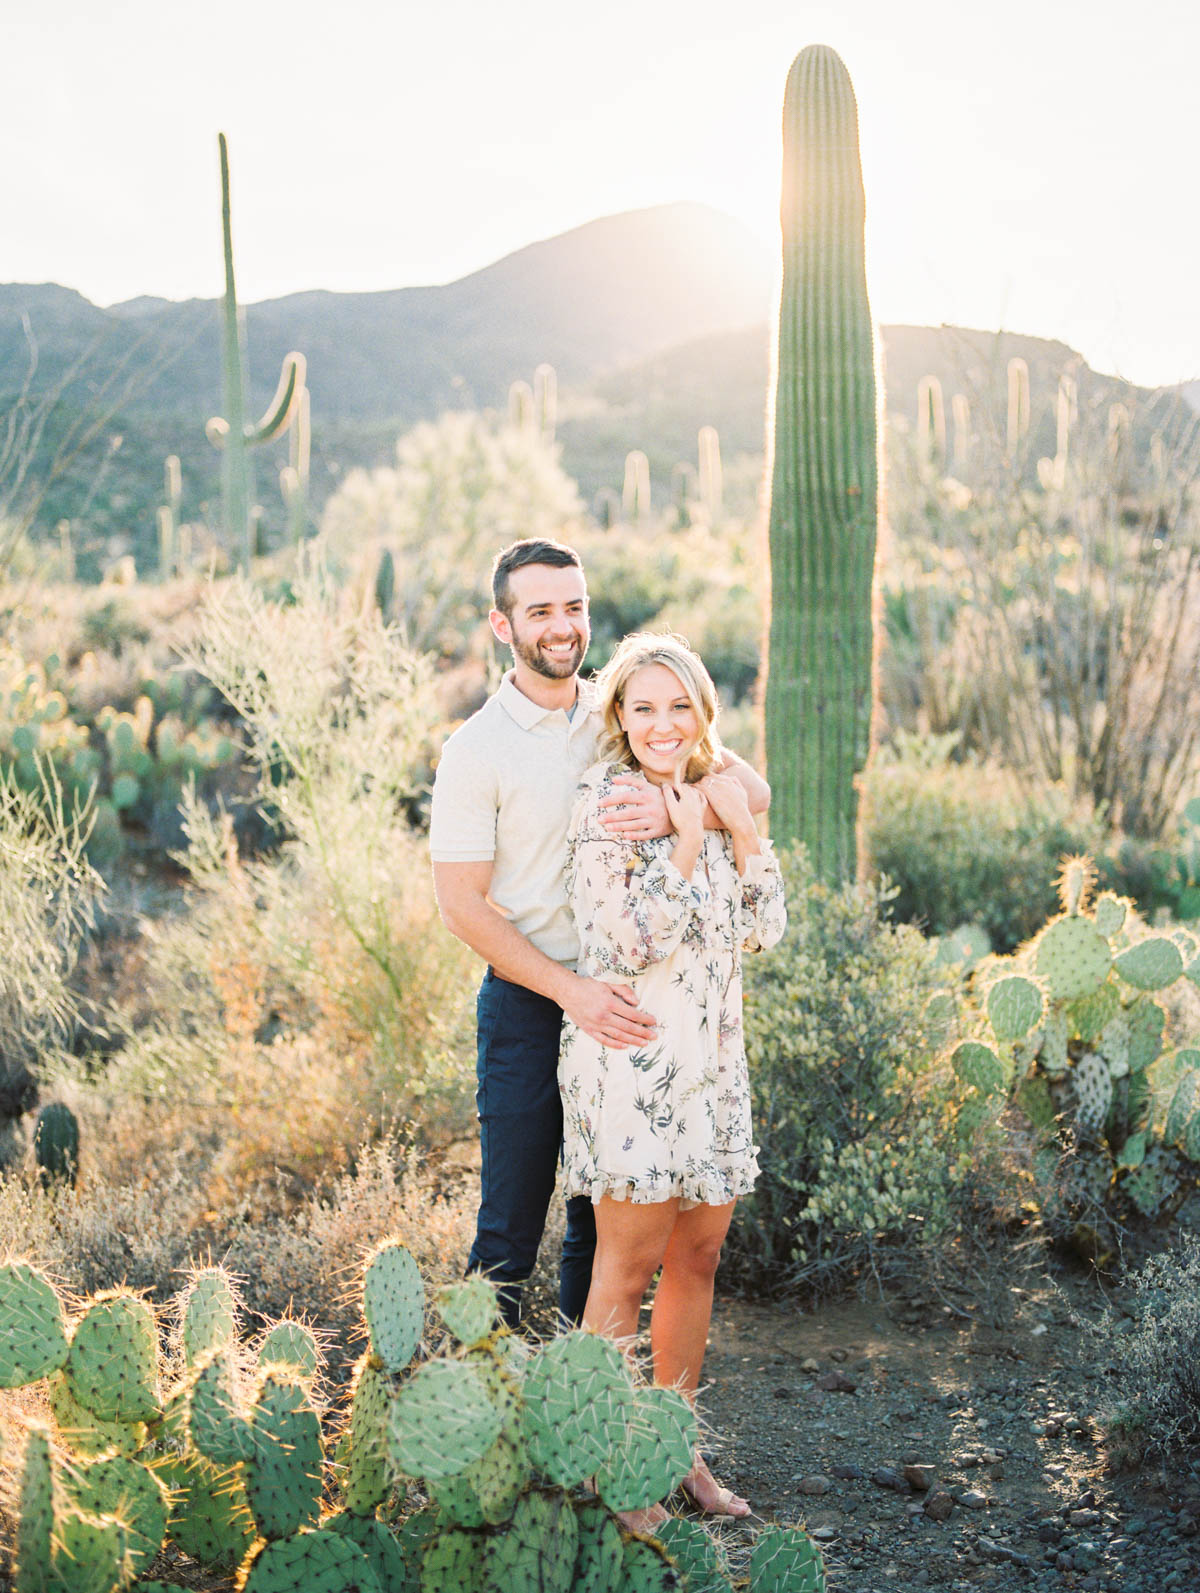 tucson-desert-engagement-session-16.jpg